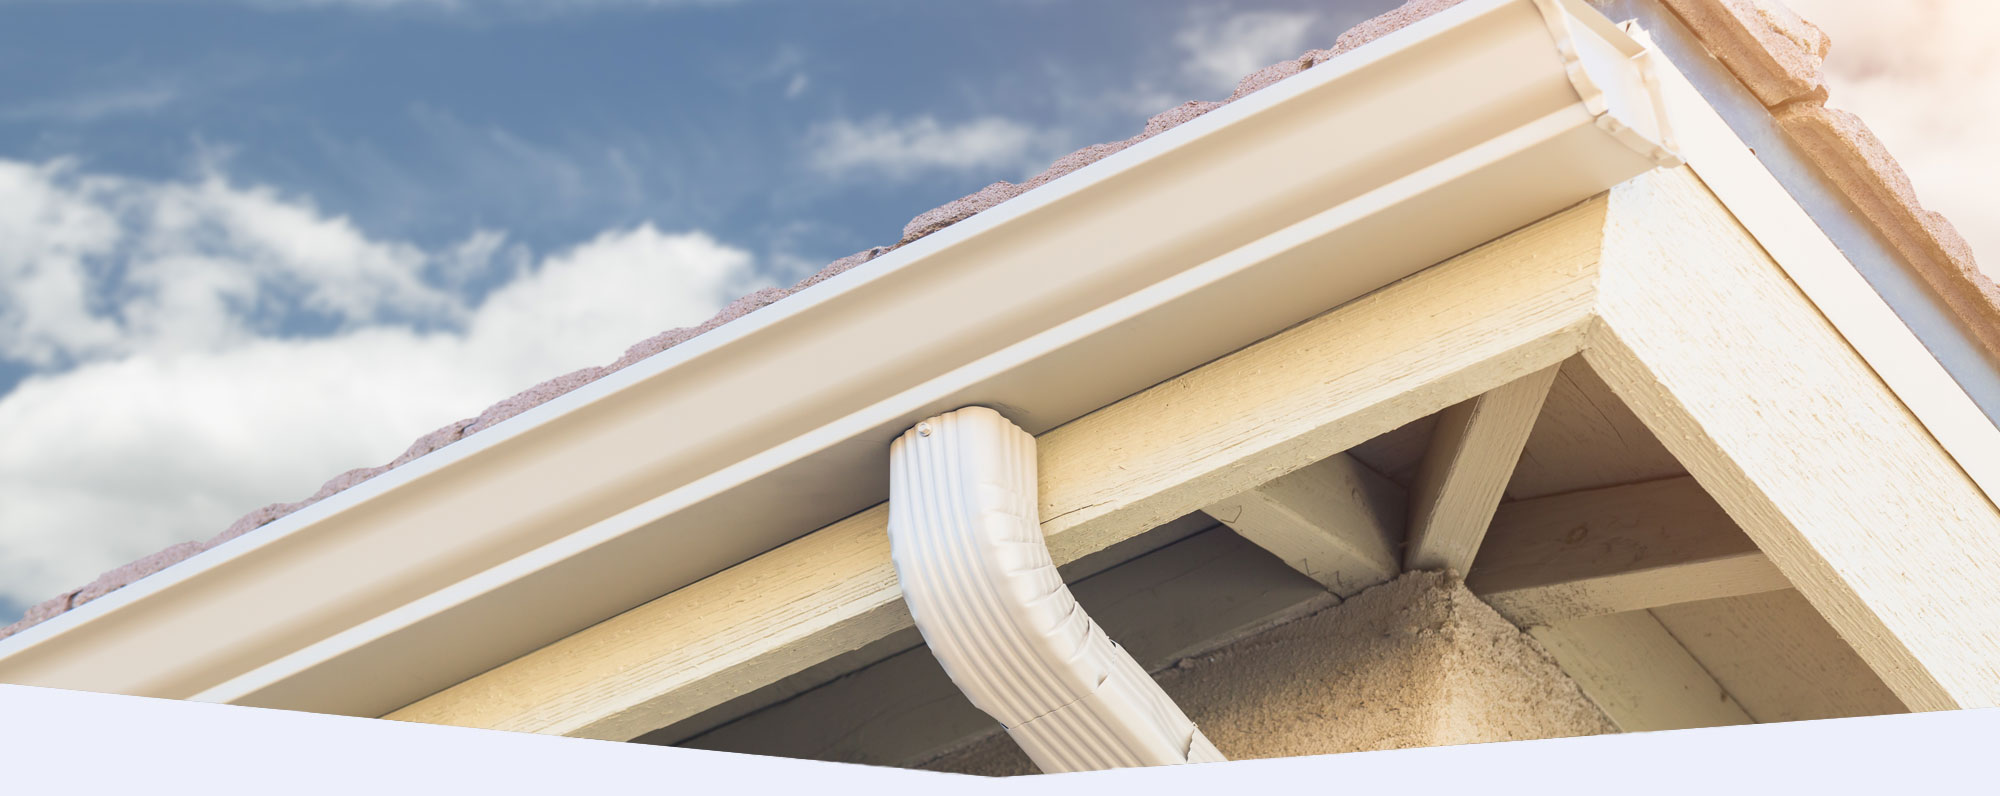 Sky angled shot showcasing a white seamless rain gutter and downspout against a blue sky